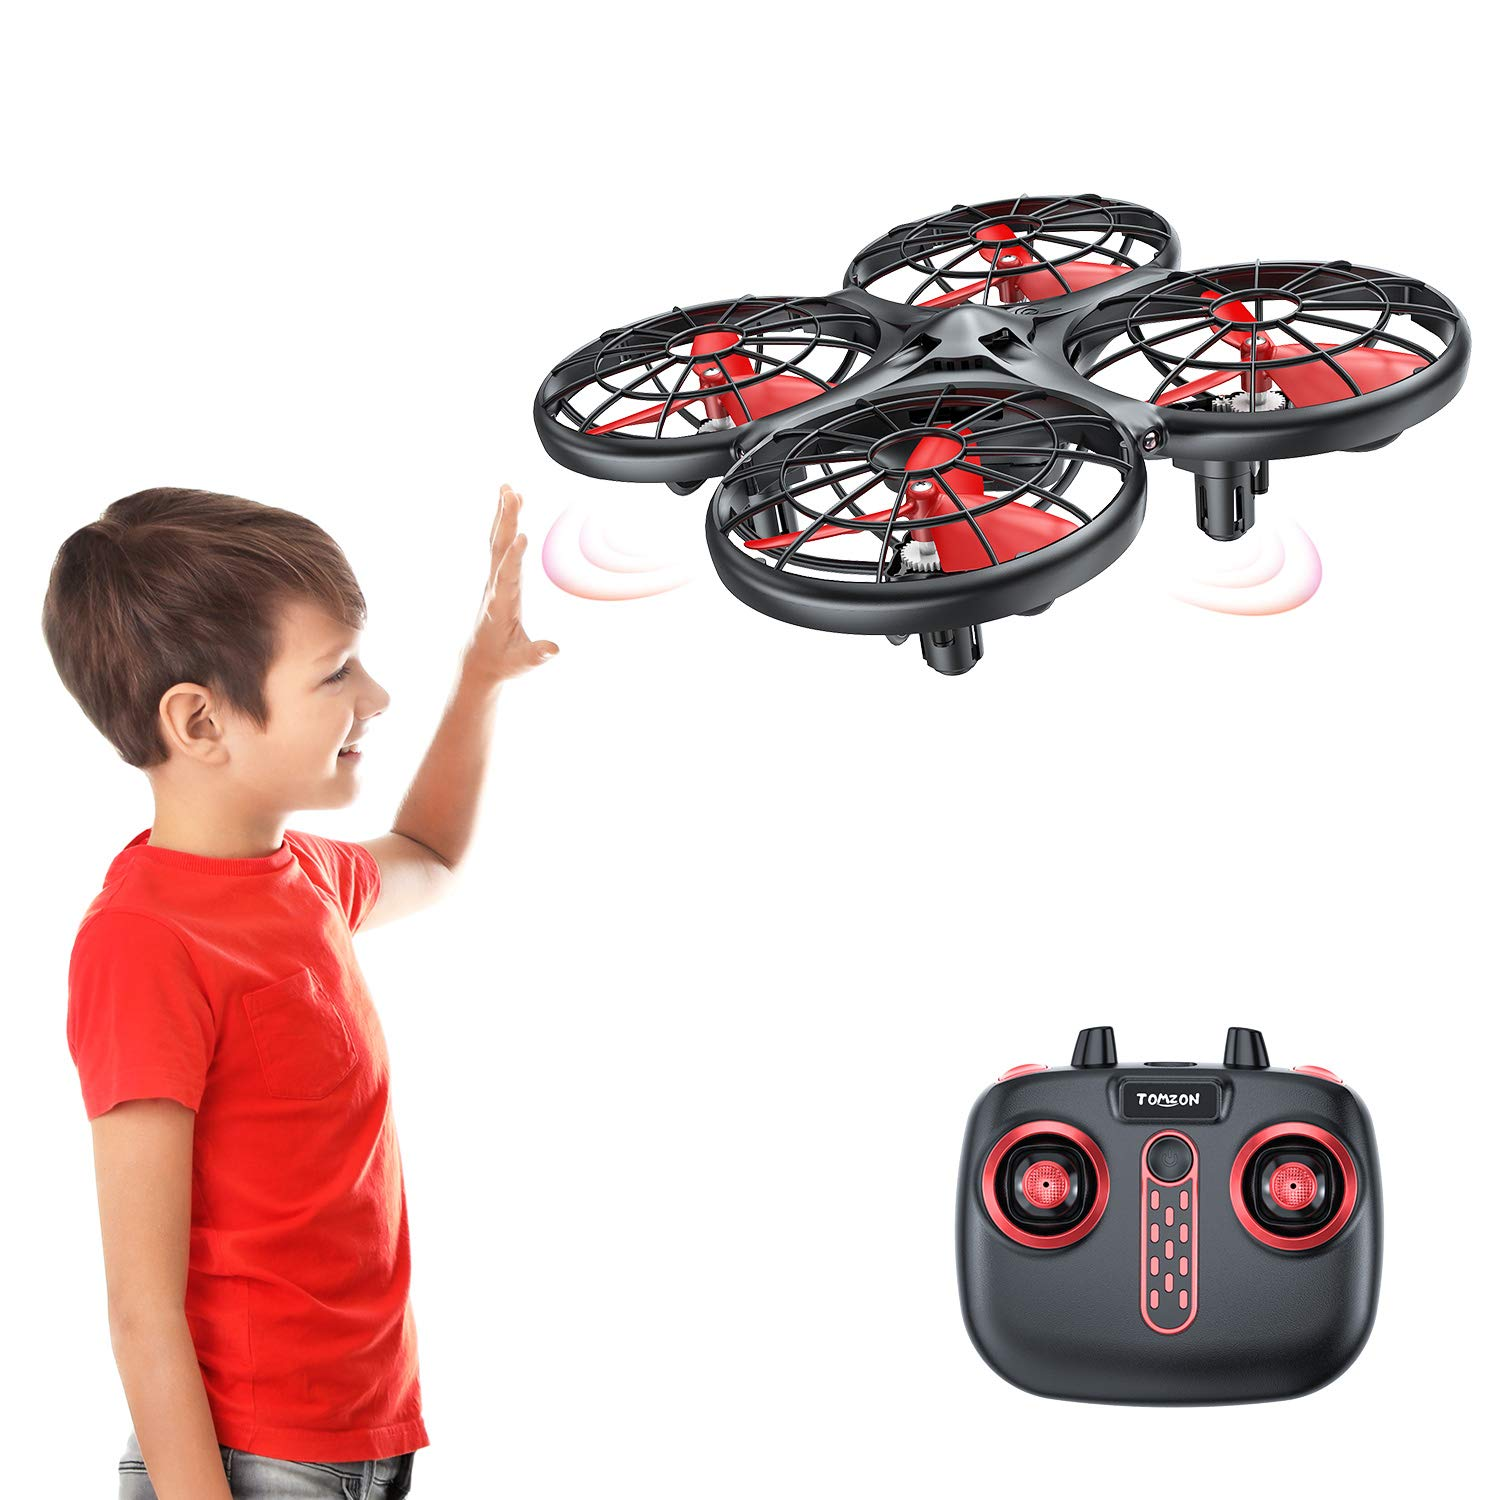 Tomzon D15 Hand Operated Mini Drone, Infrared Induction, Anti-Collision RC Quadcopter, 360° Flips UFO Drone Flying Toy, Hand Controlled Drone for Boys and Girls